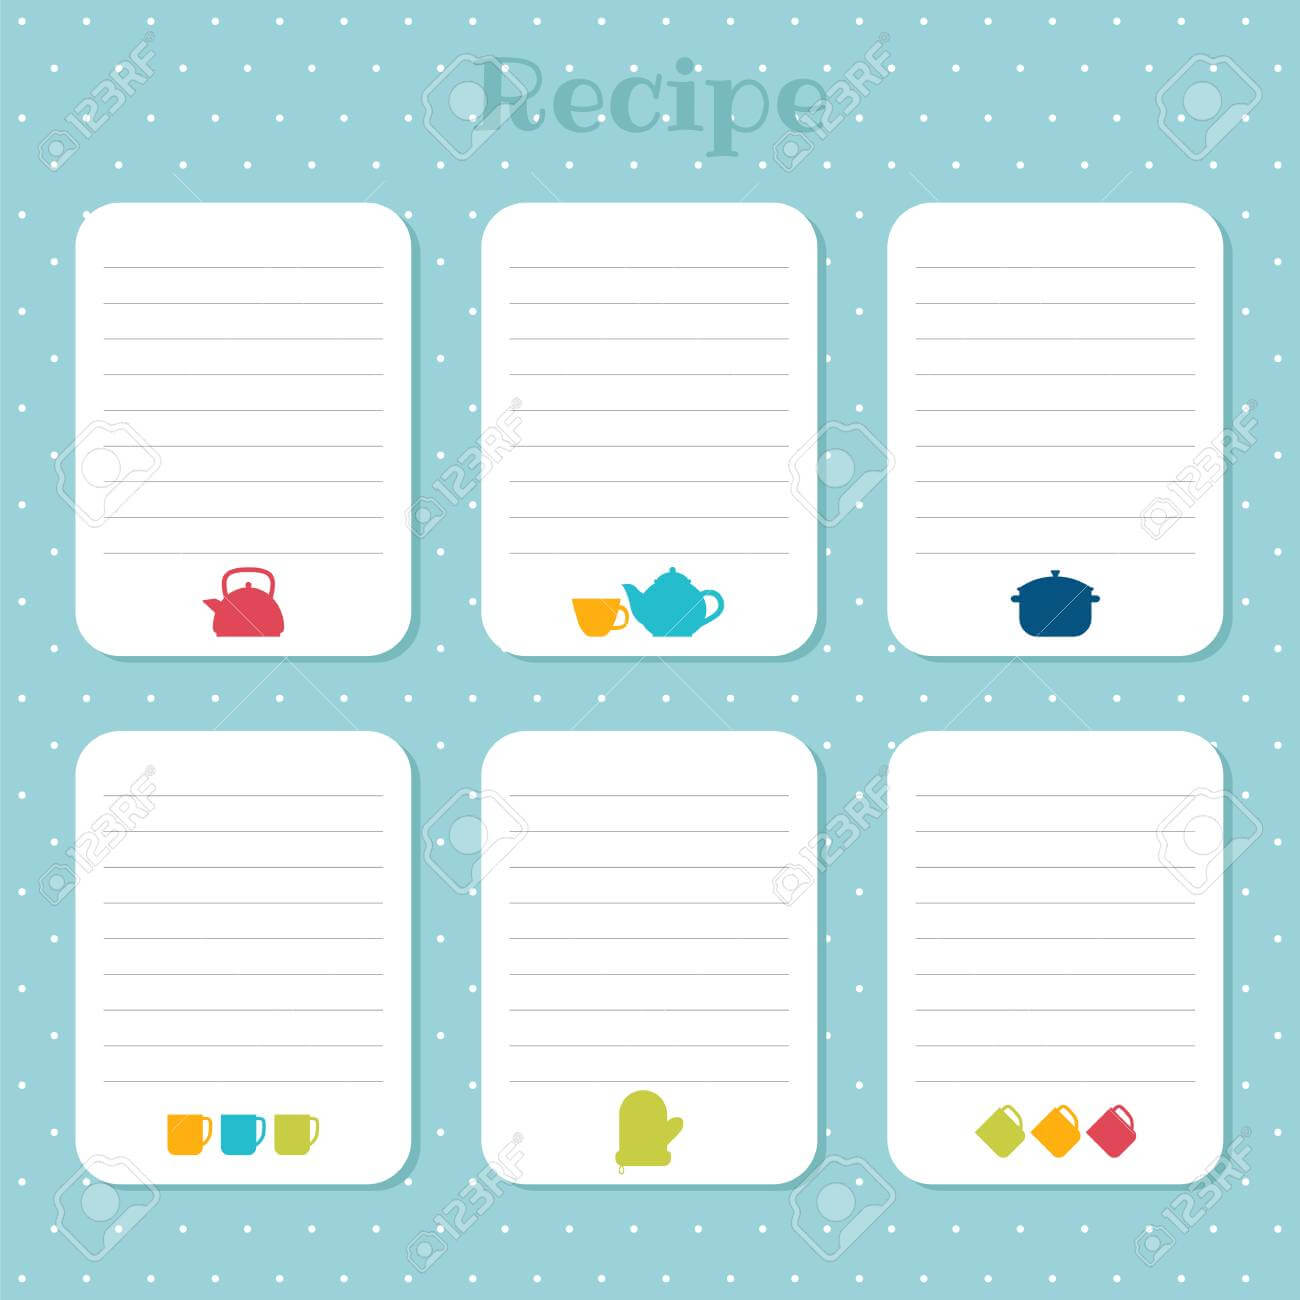 Recipe Cards Set. Cooking Card Templates. For Restaurant, Cafe,.. Intended For Restaurant Recipe Card Template